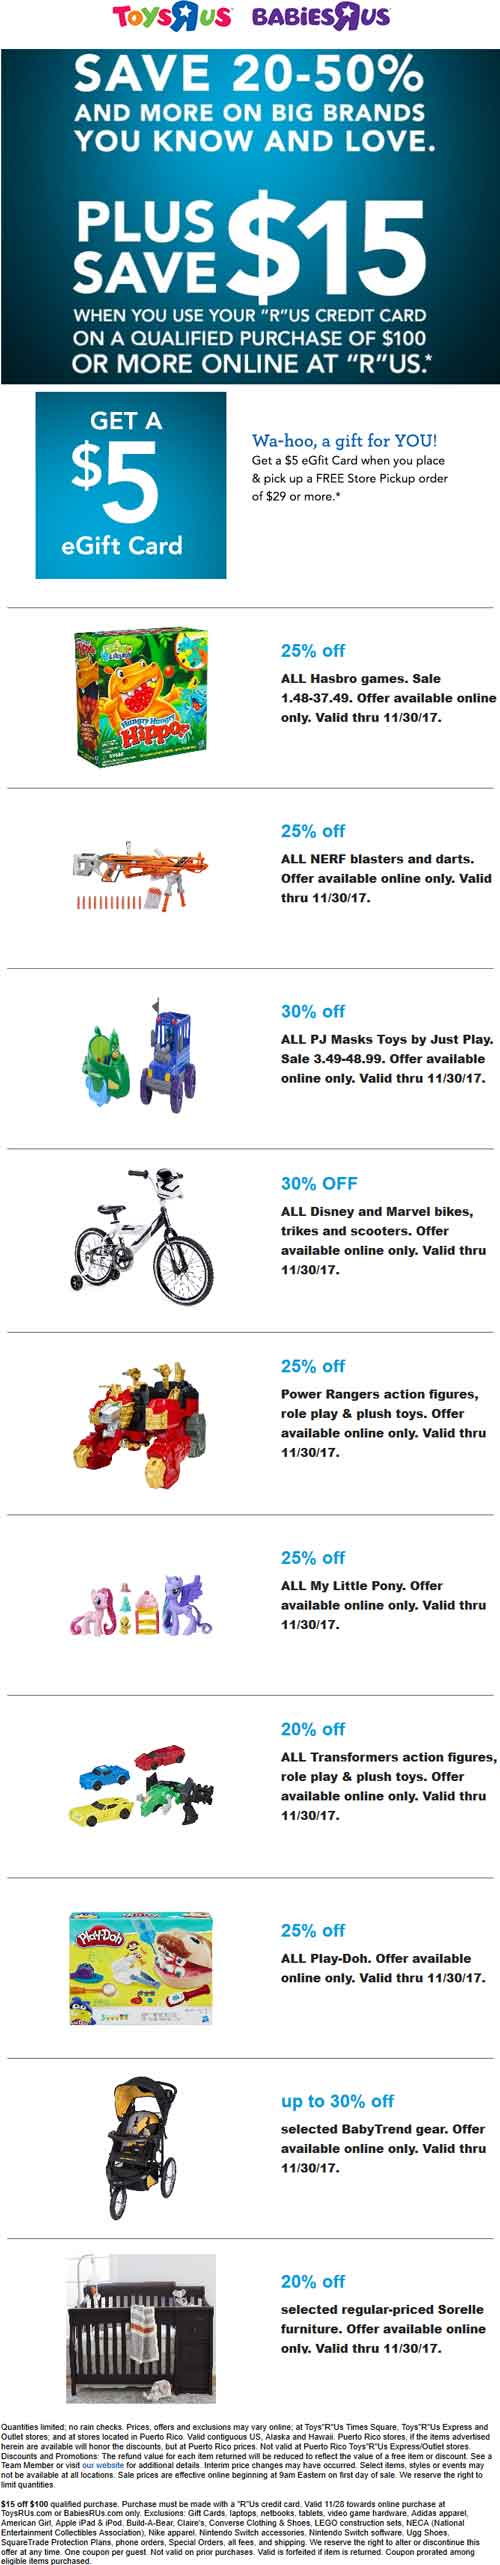 Toys R Us Coupon October 2018 $5 egift off $29 in-store pickup, 25% off games & more at Toys R Us